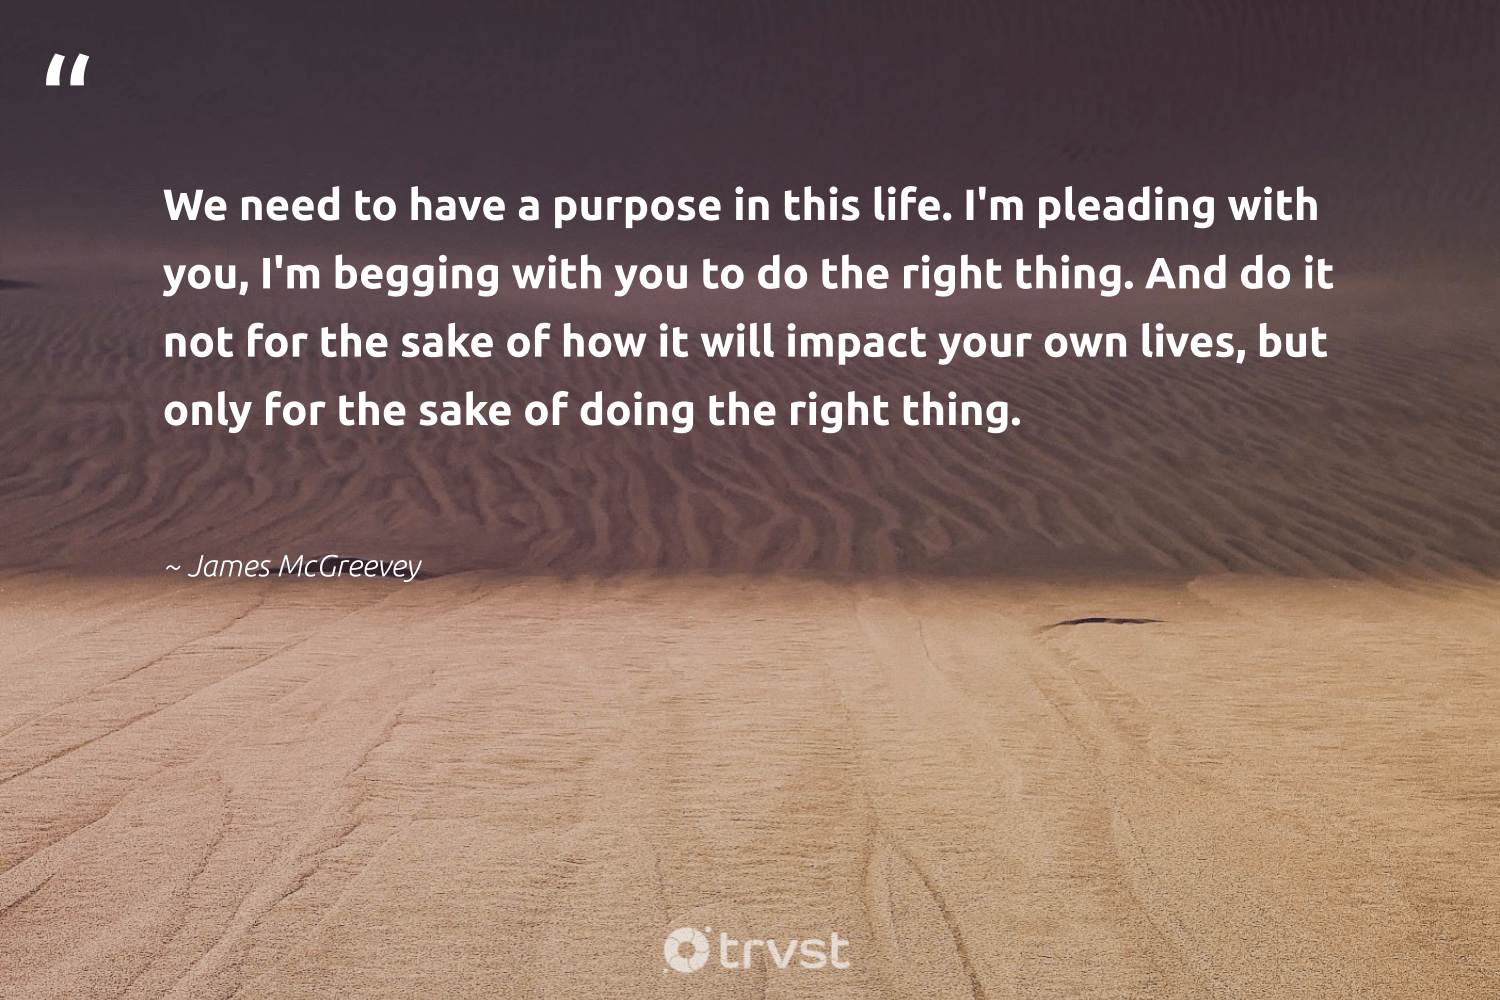 """""""We need to have a purpose in this life. I'm pleading with you, I'm begging with you to do the right thing. And do it not for the sake of how it will impact your own lives, but only for the sake of doing the right thing.""""  - James McGreevey #trvst #quotes #impact #dotherightthing #purpose #findpurpose #giveback #mindset #dogood #purposedriven #socialchange #togetherwecan"""